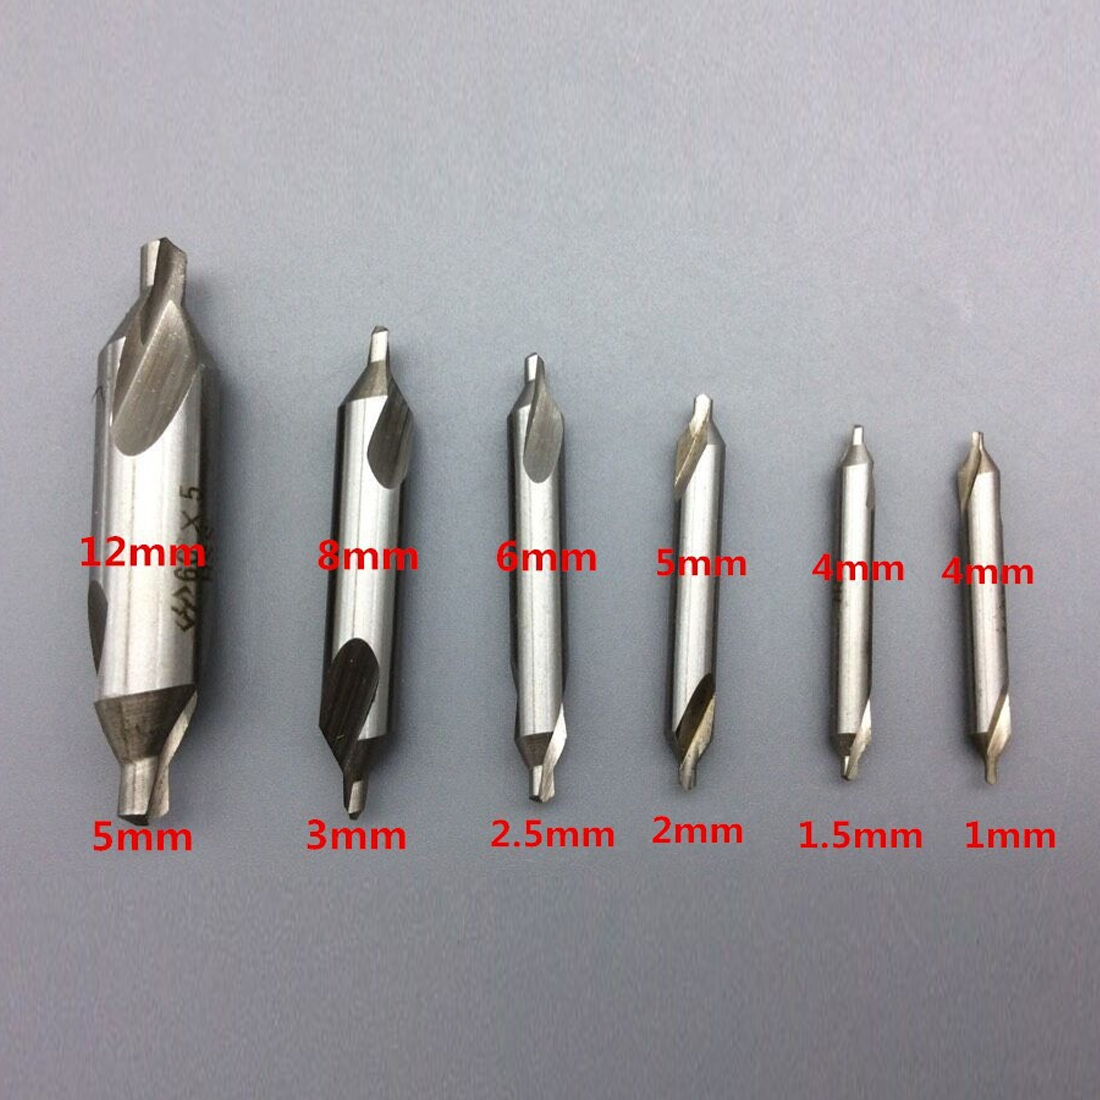 10x A-Type 2.0mm Tip HSS Combined Center Drill 60 Degree Angle Countersink Bit